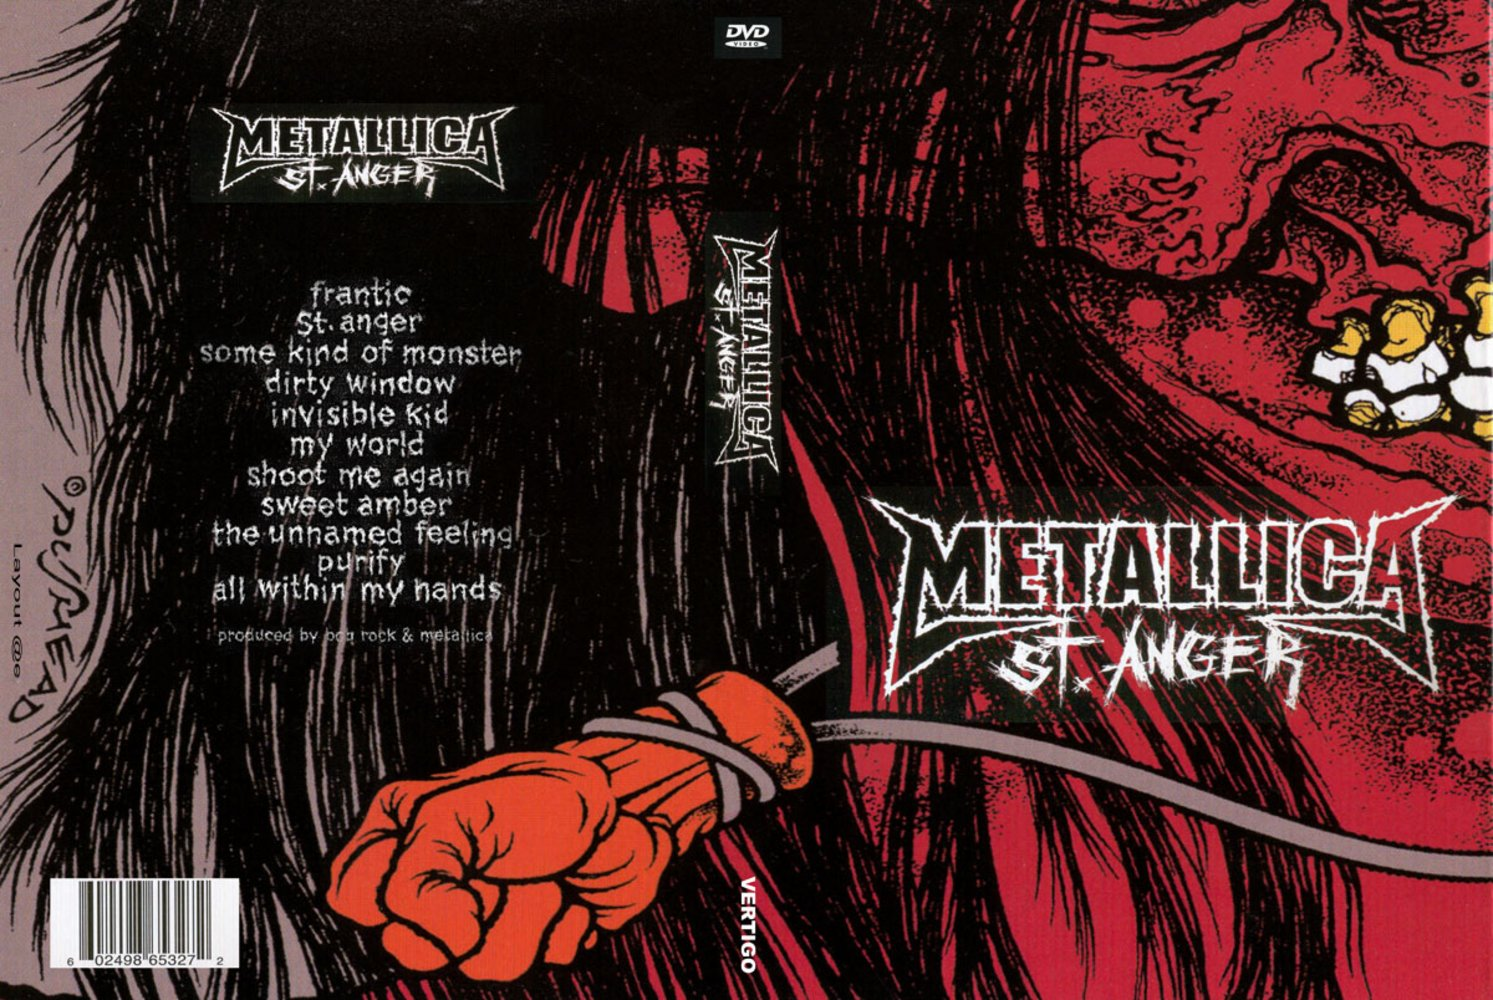 Metallica - St. Anger custom